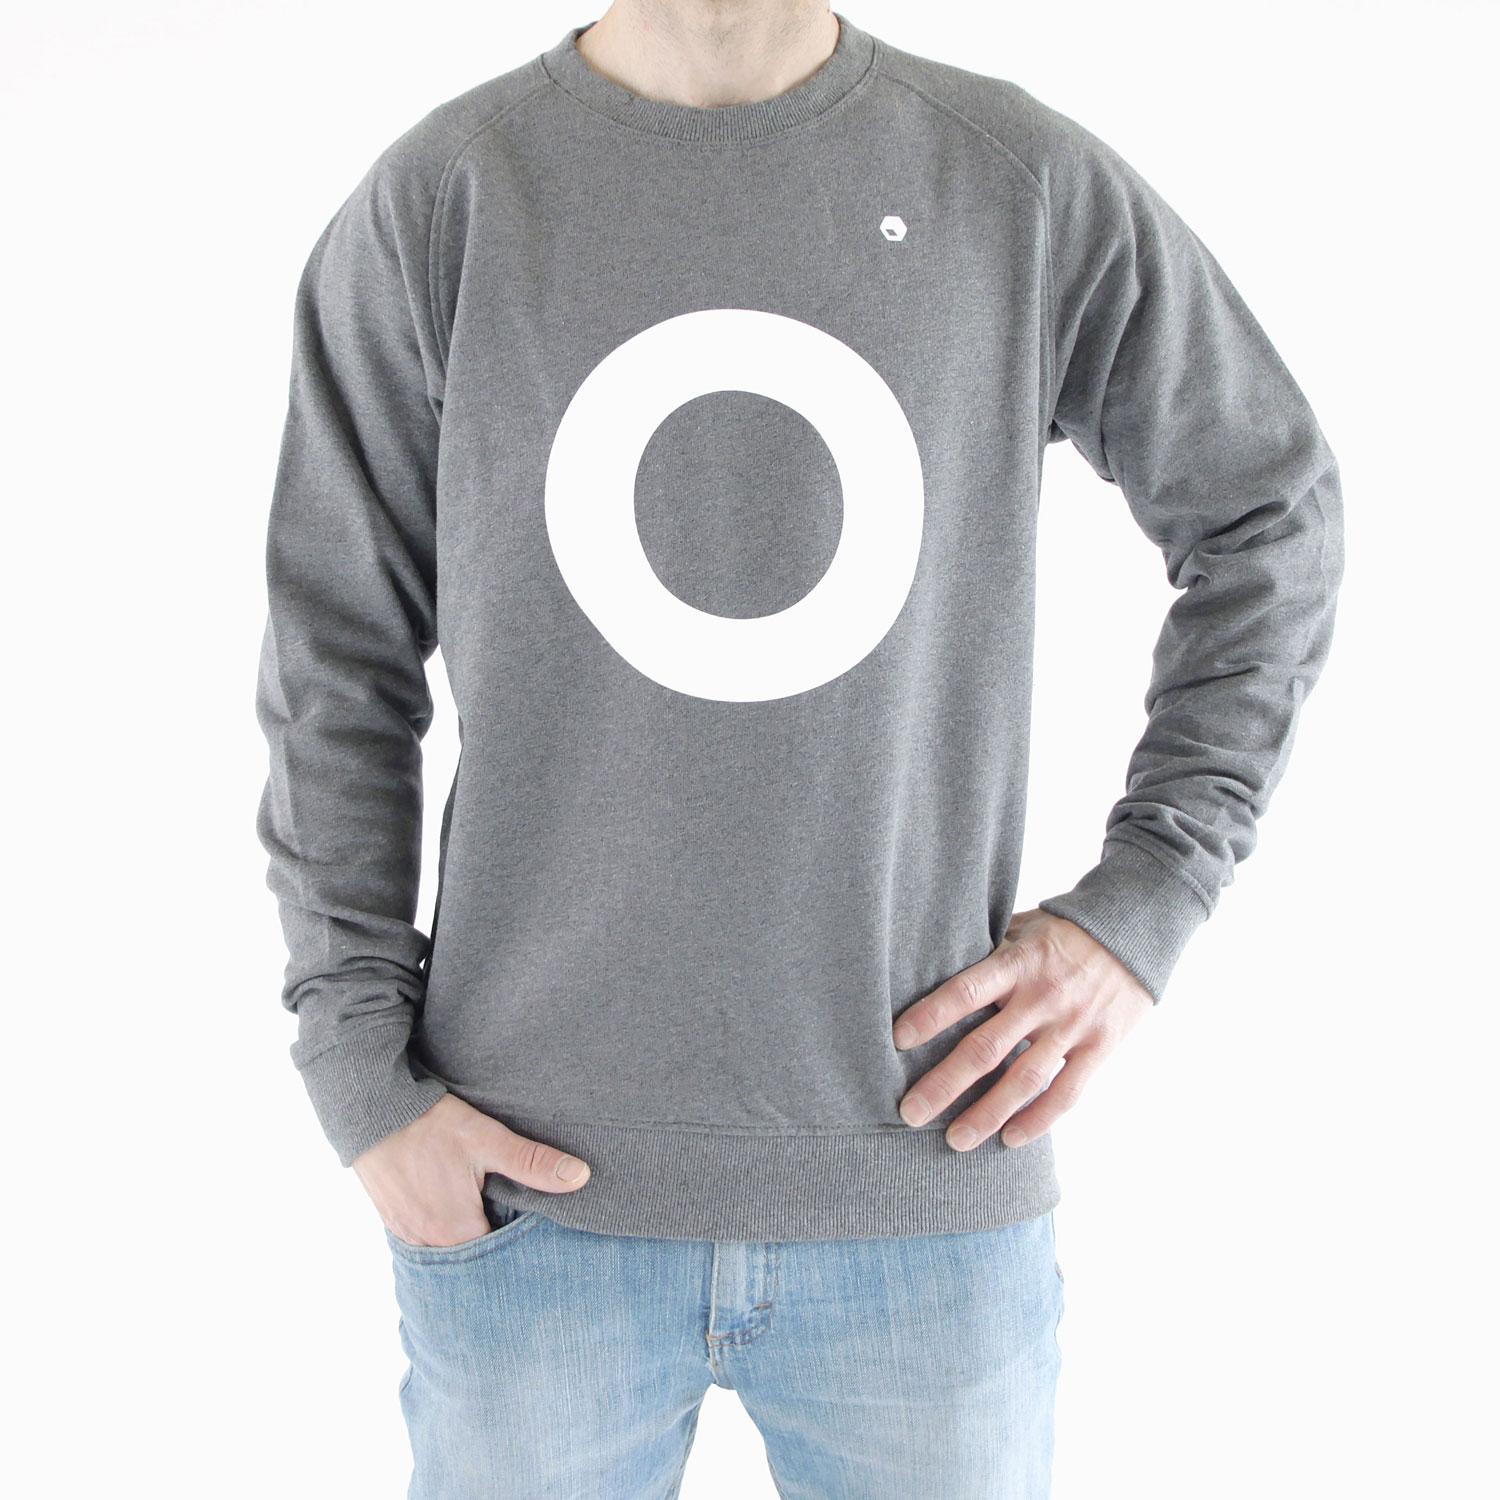 Flathold-apparel-sweat-o-grey